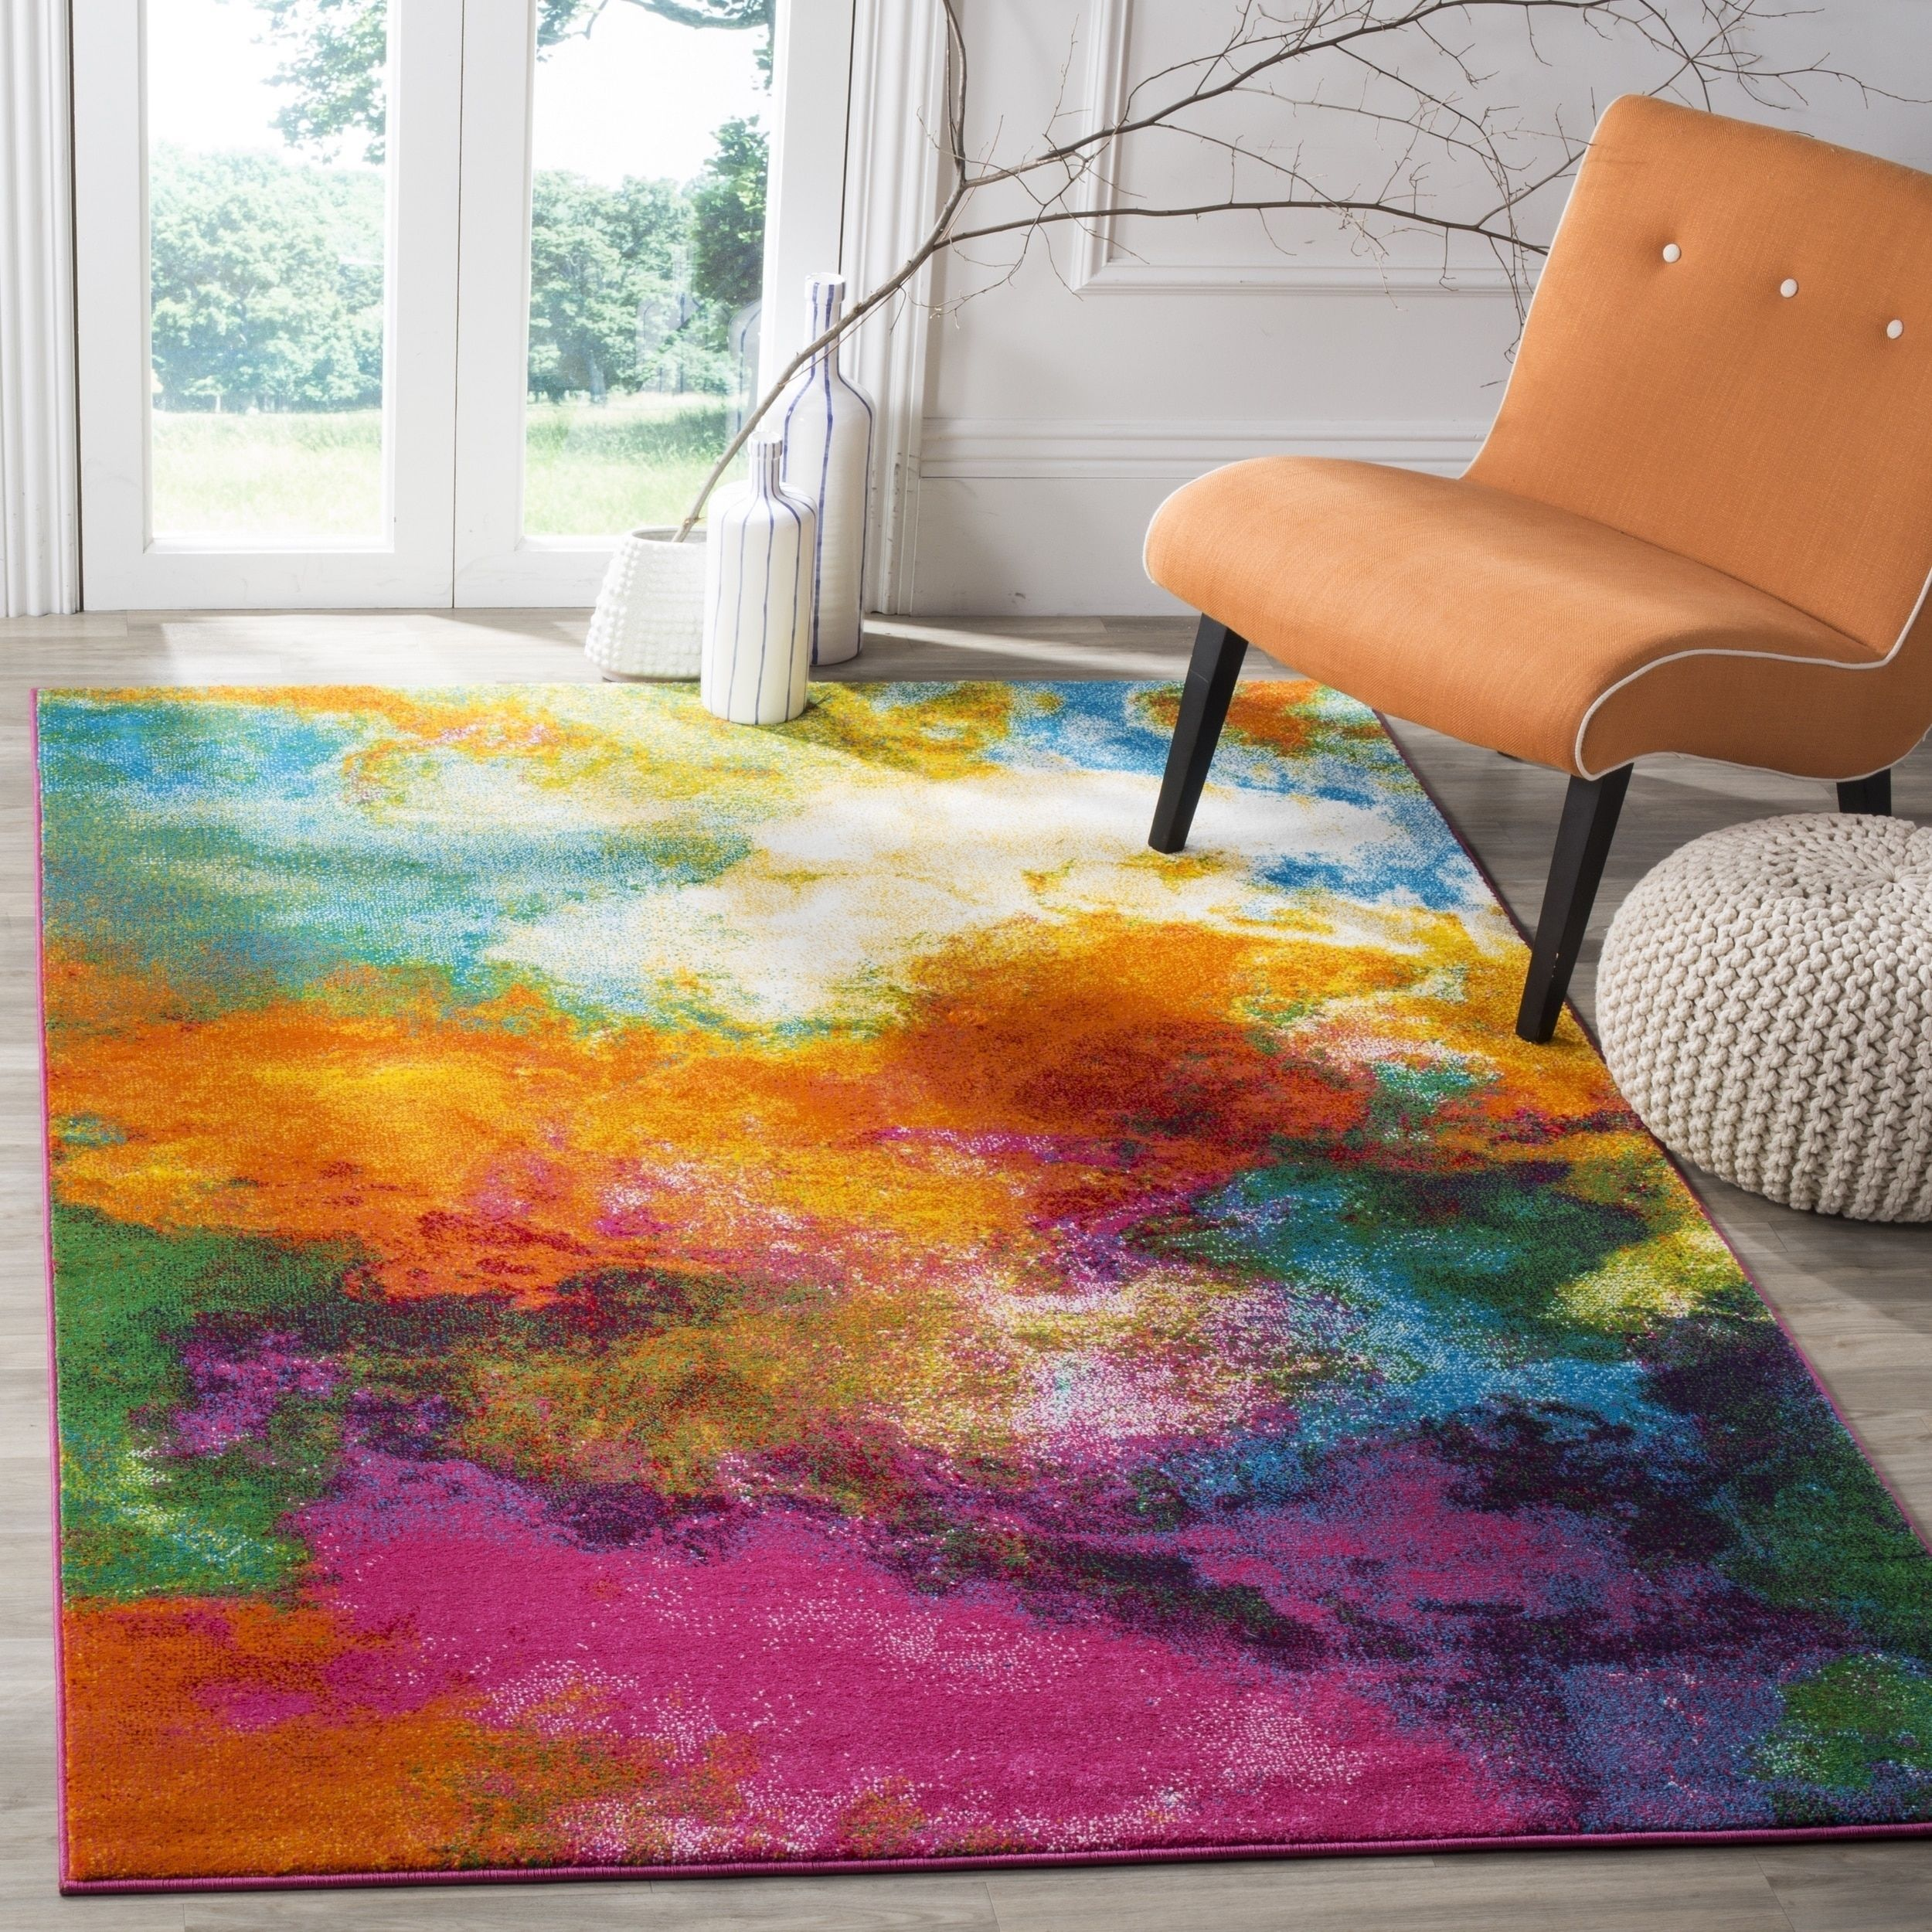 Safavieh Watercolor Virve Watercolor Modern Abstract Rug